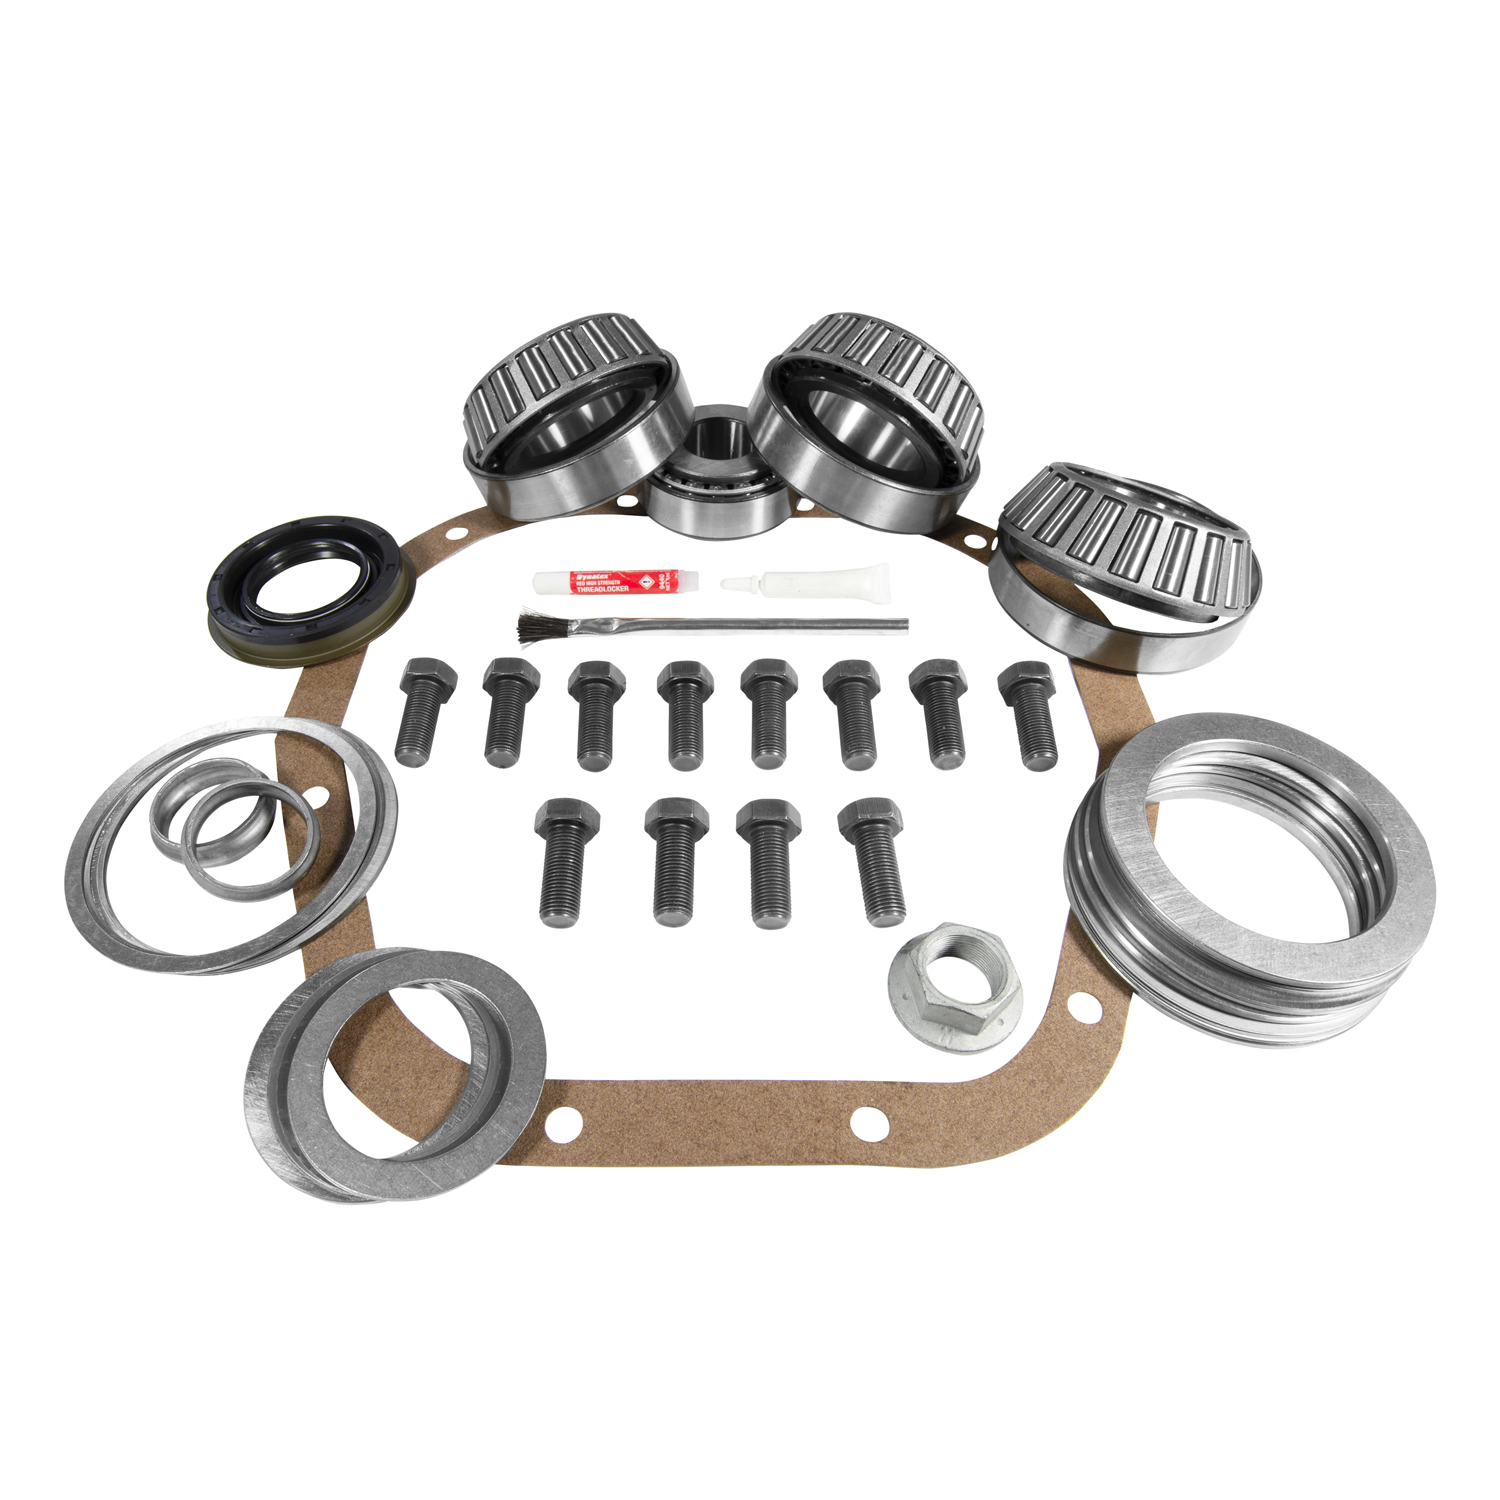 YK F10.5-A - Yukon Master Overhaul kit for '07 & down Ford 10.5